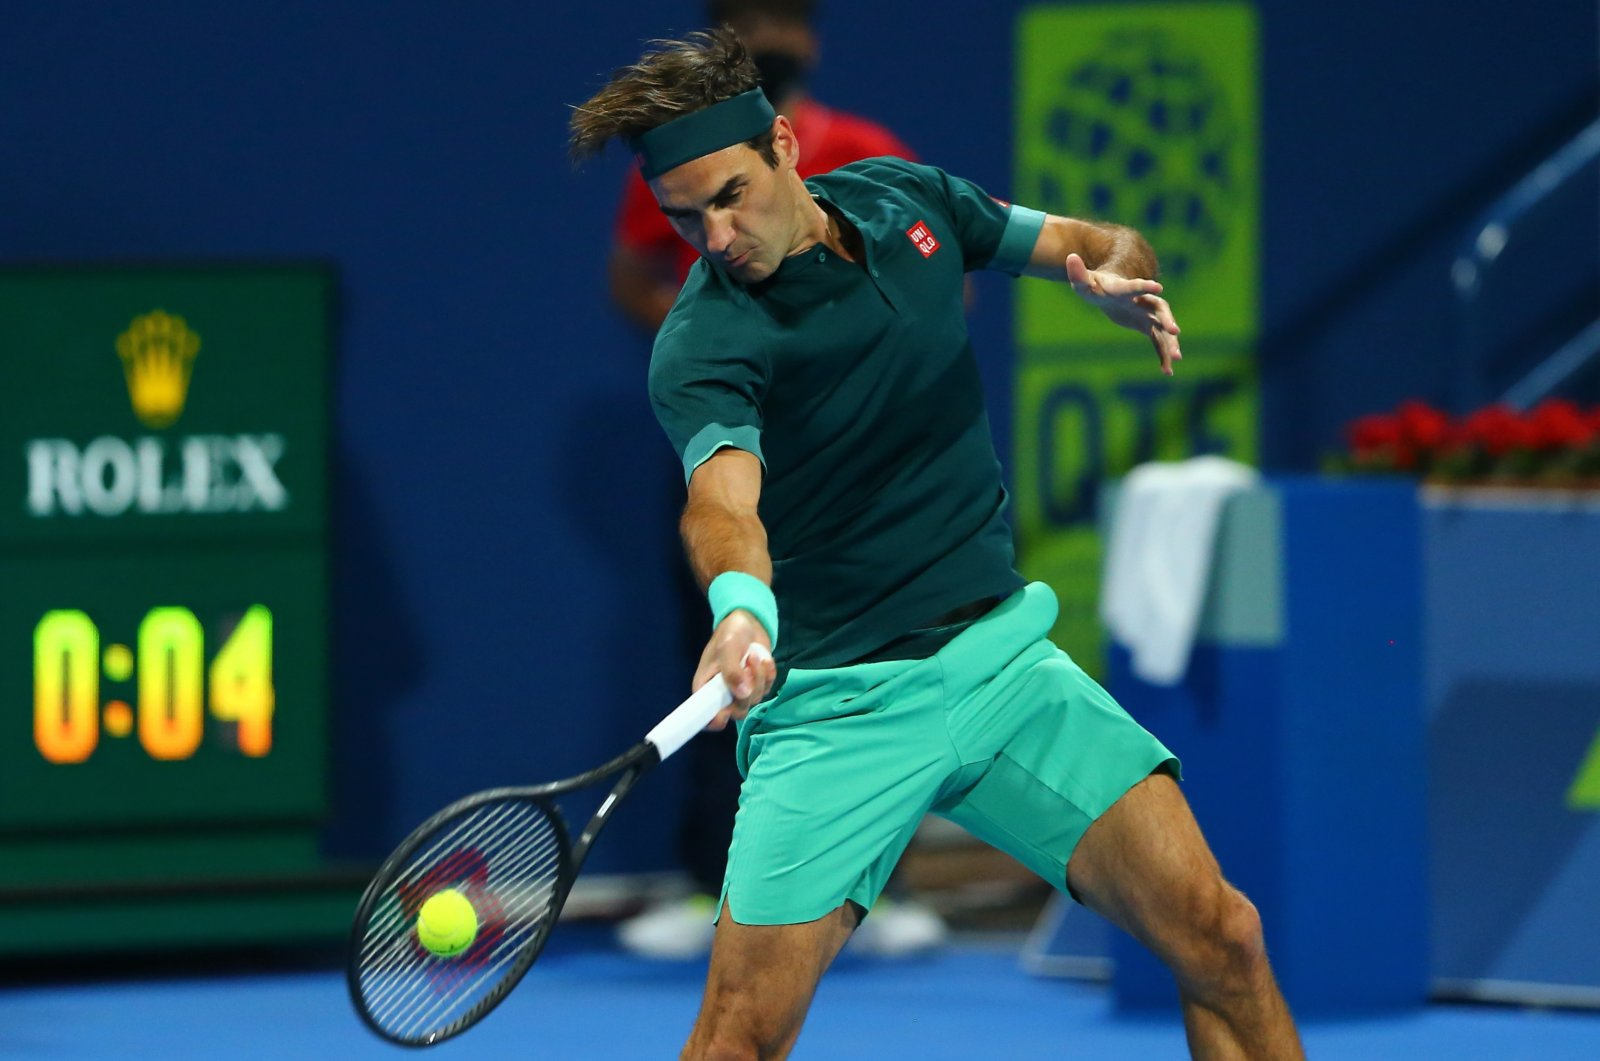 A handout photo made available by beIN Sports of Roger Federer of Switzelrand playing a forehand against Daniel Evans of Great Britain during their match at the Qatar Exxonmobil Open in Doha, Qatar, 10 March 2021. (EPA handout by beIN Sports)